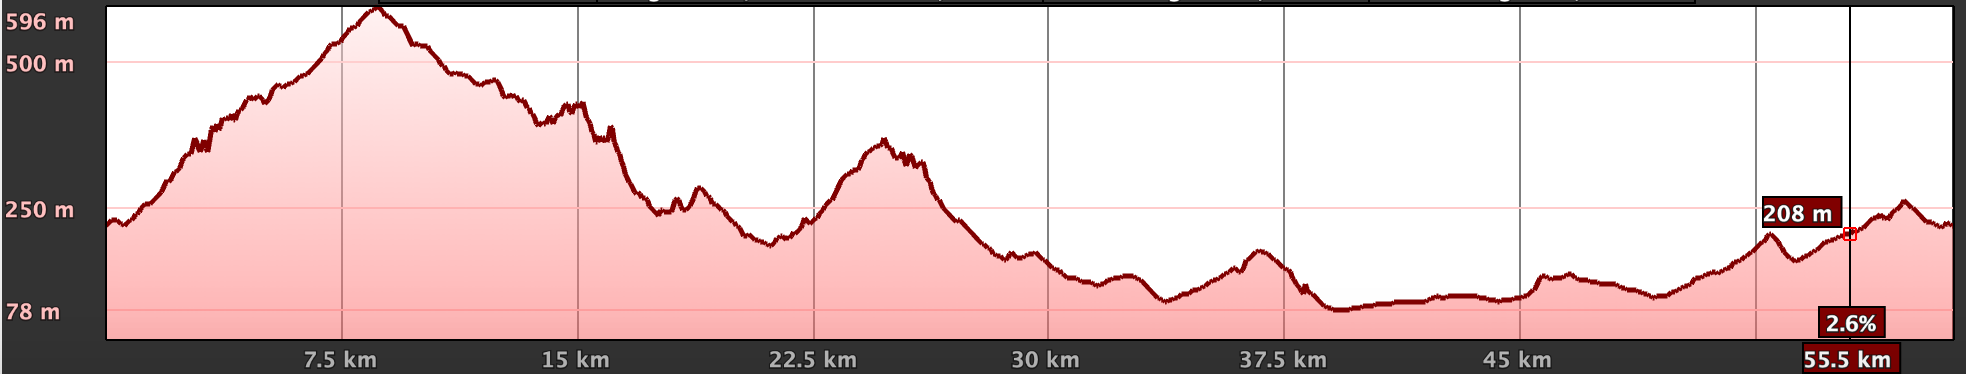 2018-7-29 Hayterdale classic route elevation 60km